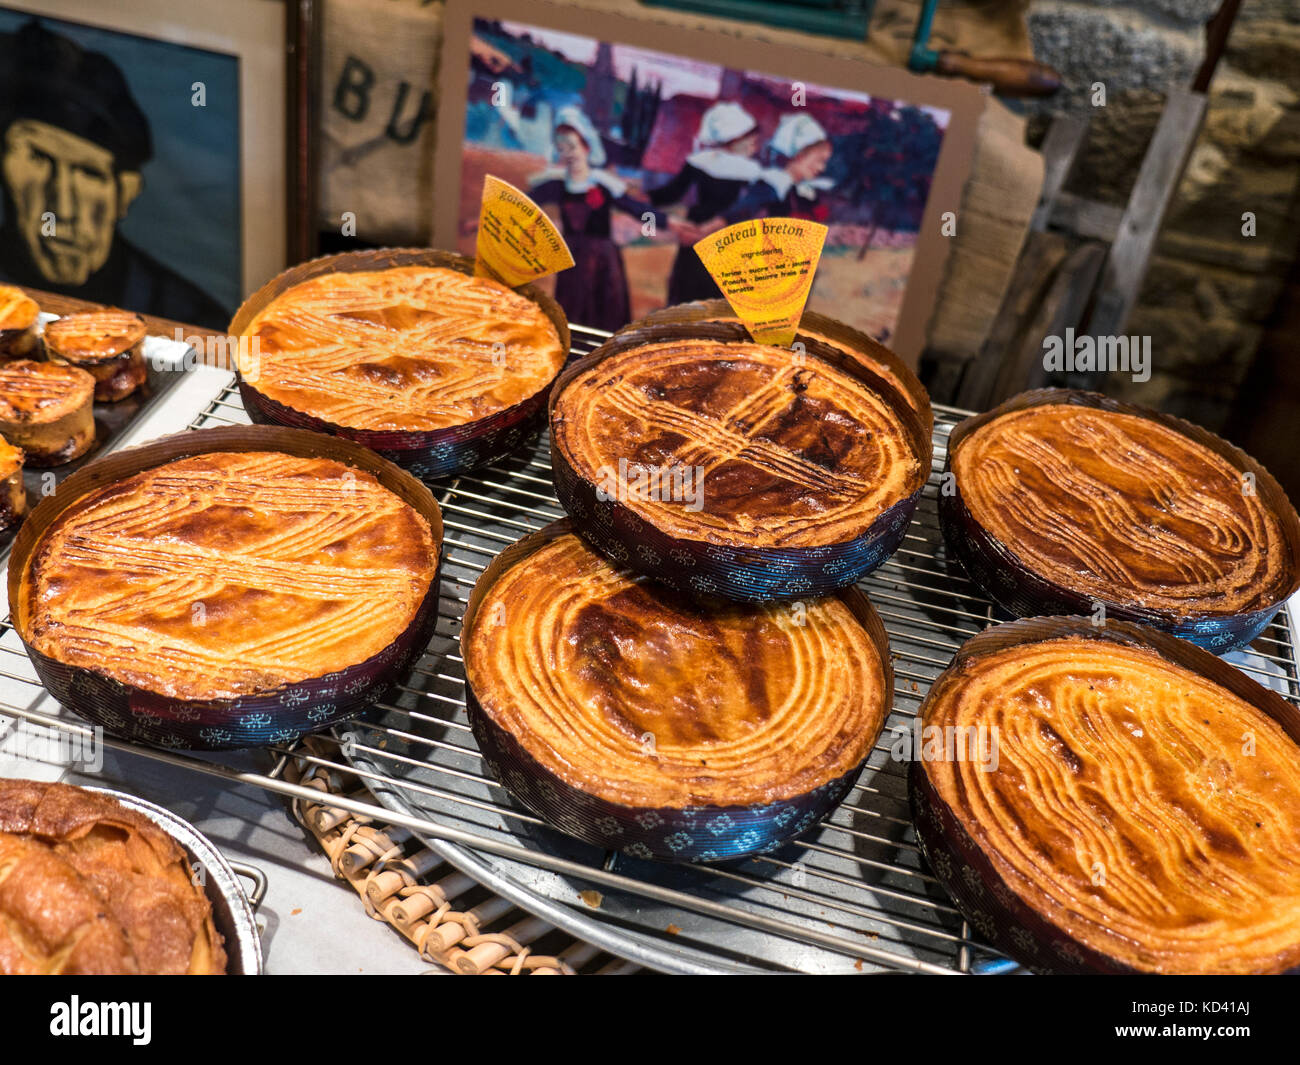 Gâteau Breton renowned local delicacy also known as Brittany butter cake produced by artisan baker Chazè - Stock Image